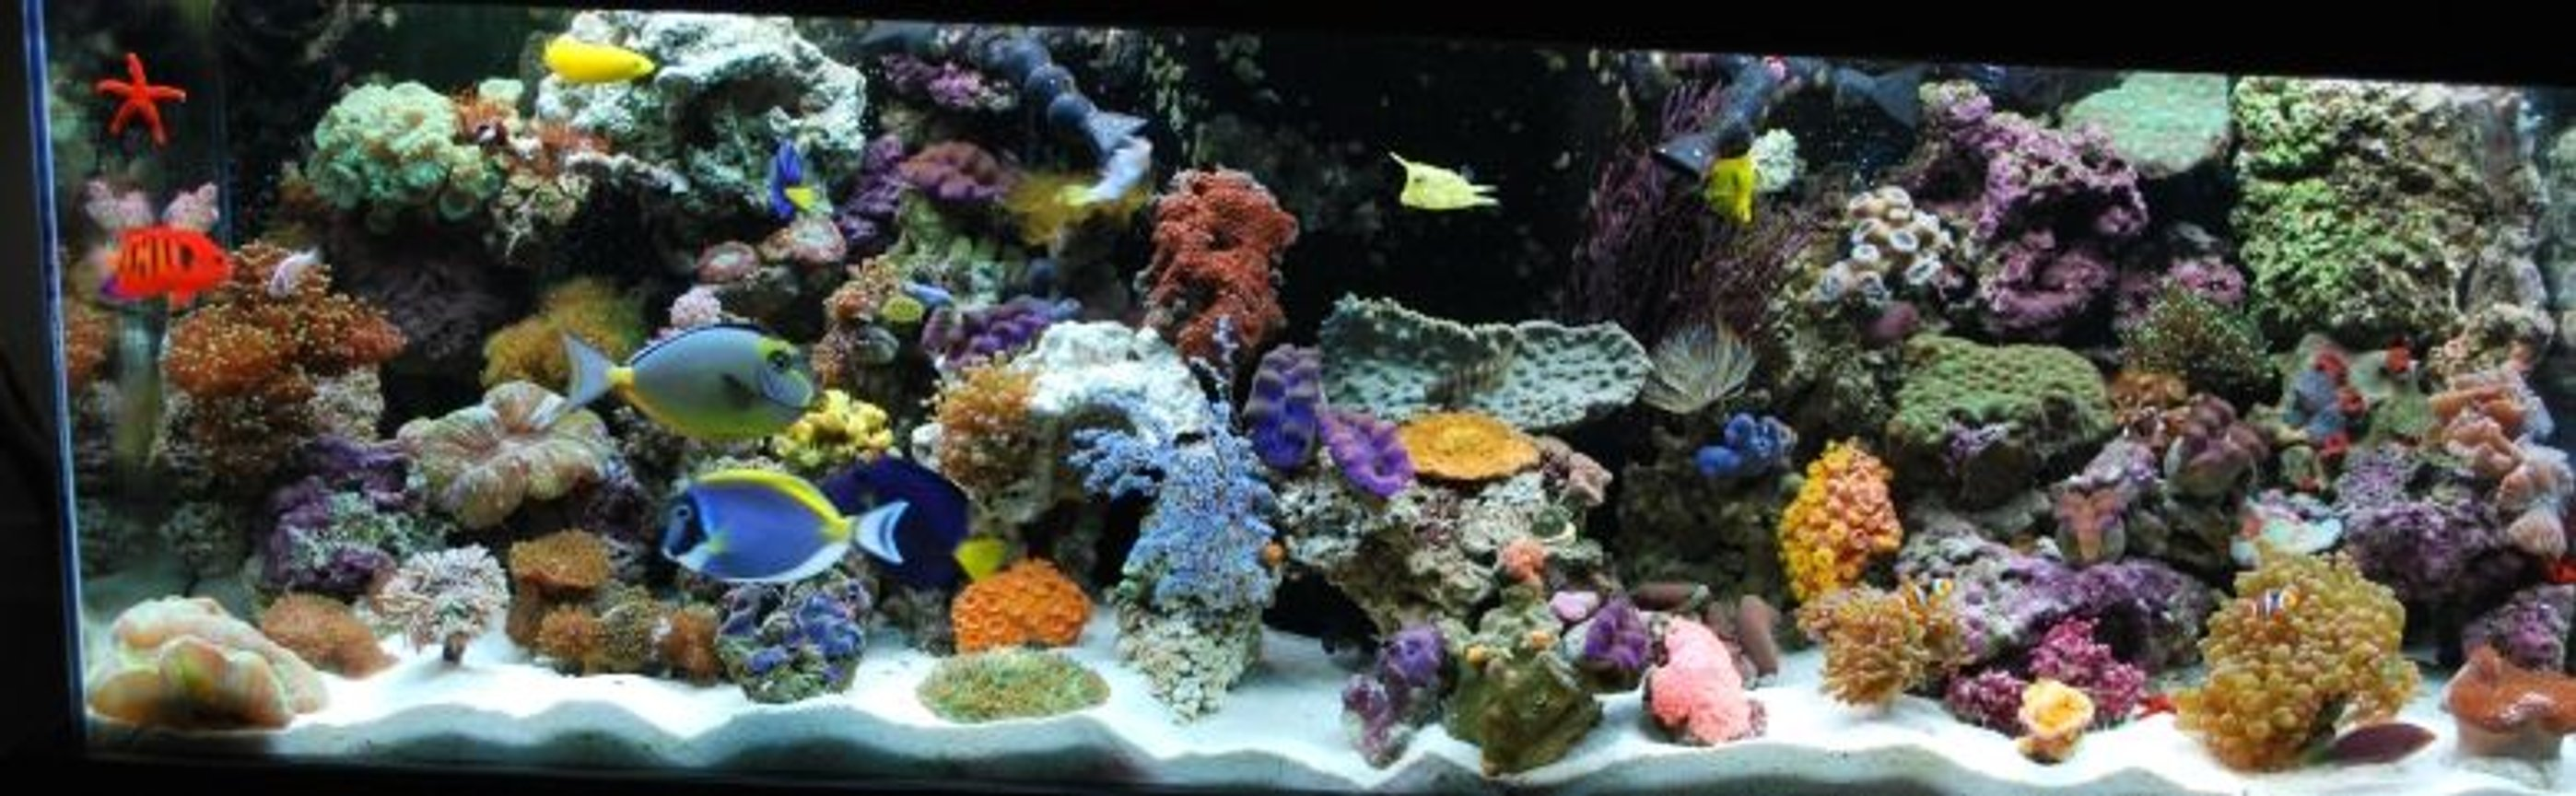 60 gallons reef tank (mostly live coral and fish) - 12/08 - Updated tank picture - with 31 different fish!!! We have added even more fish to our tank - We break all the rules and yet they still live